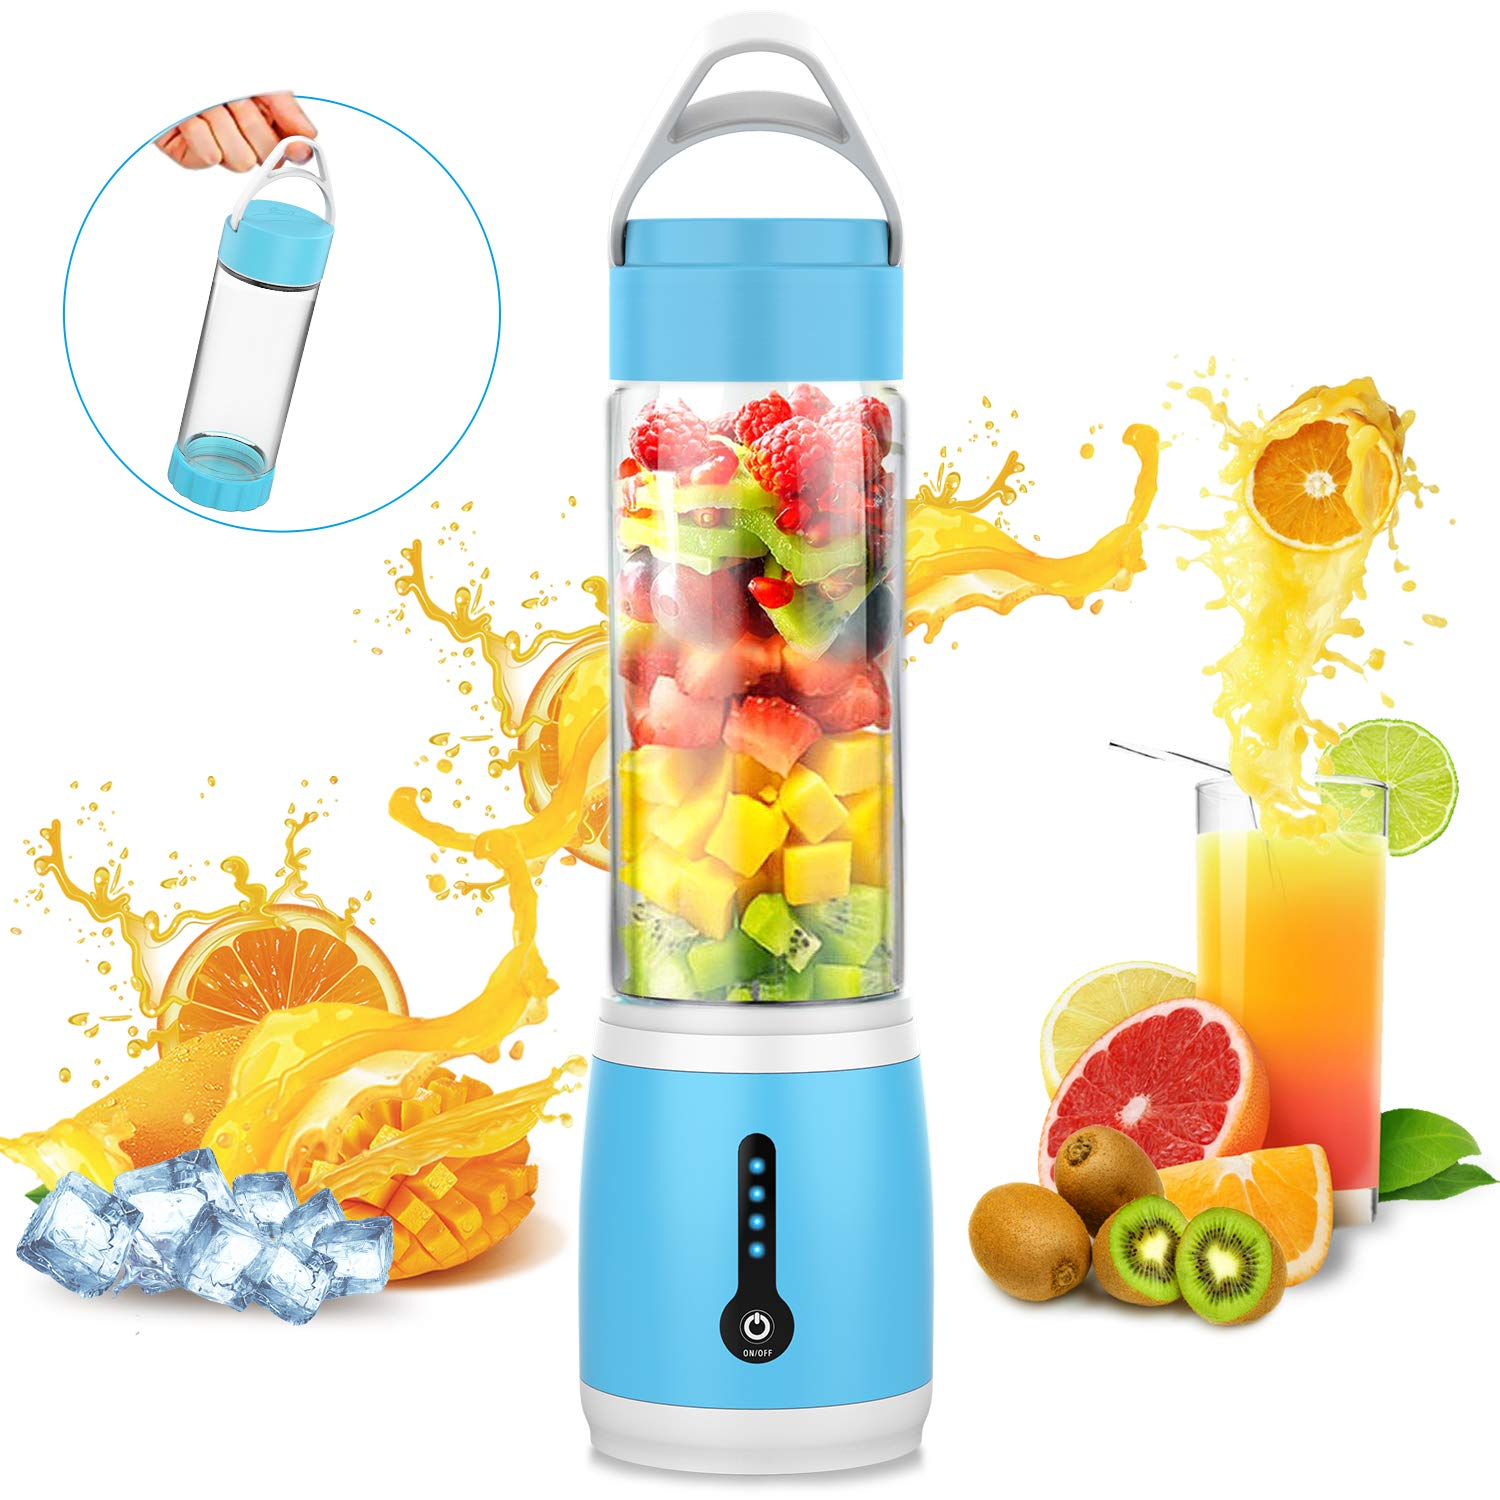 Portable Blender, Cshid-us Personal Juicer Cup for Shakes and Smoothies, Six Blades Fruit Mixing Machine with 4000mAh USB Rechargeable Batteries, Ice Tray, Detachable Cup, Perfect Blender for Personal Use 480ml Glass Bottle (FDA, BPA Free)